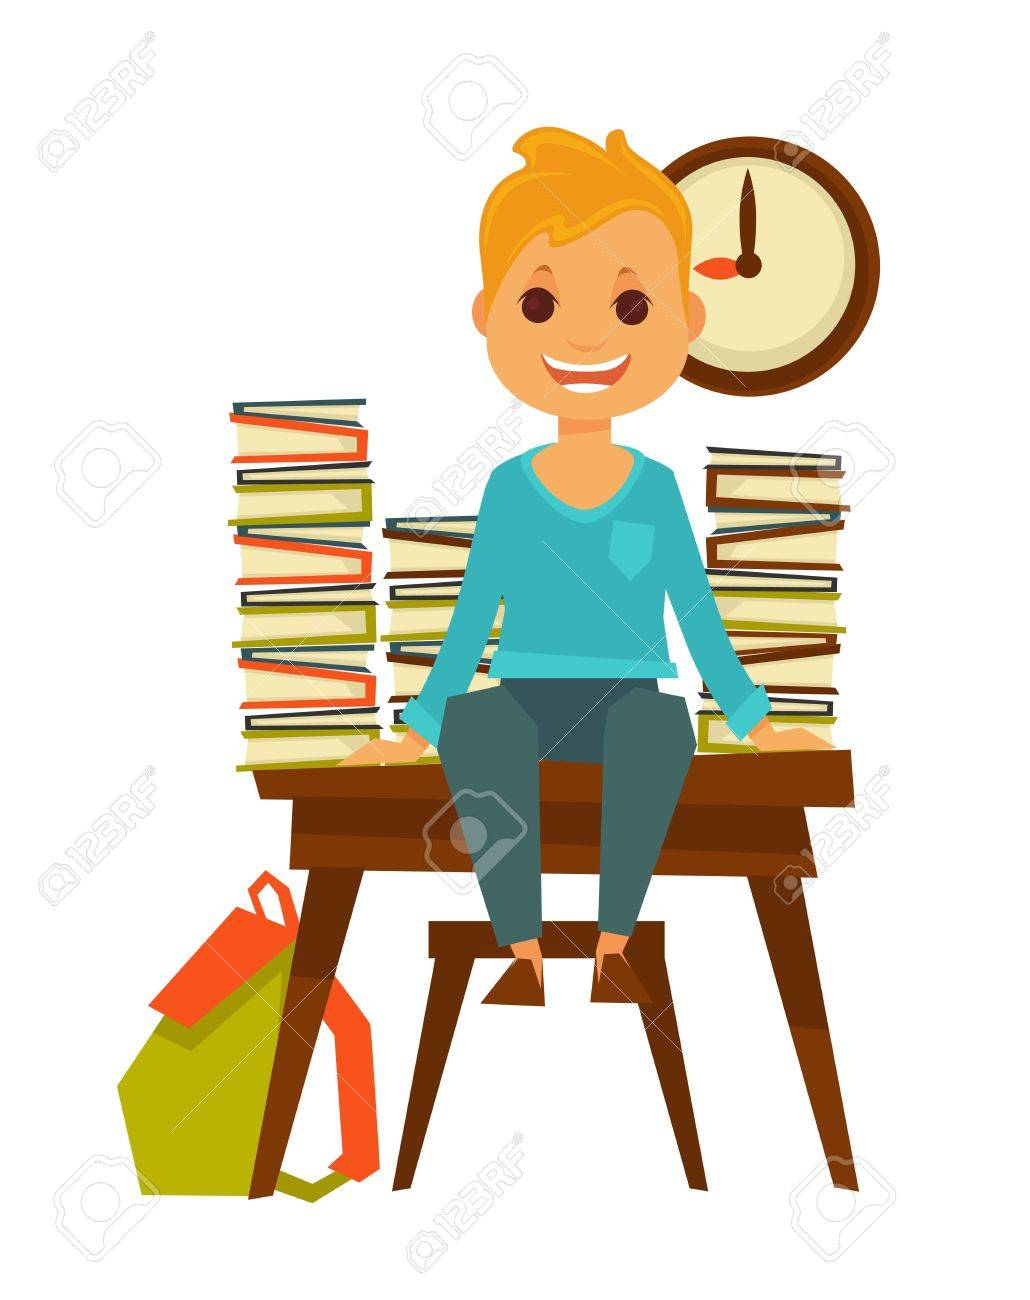 Child Sitting At Desk Clipart